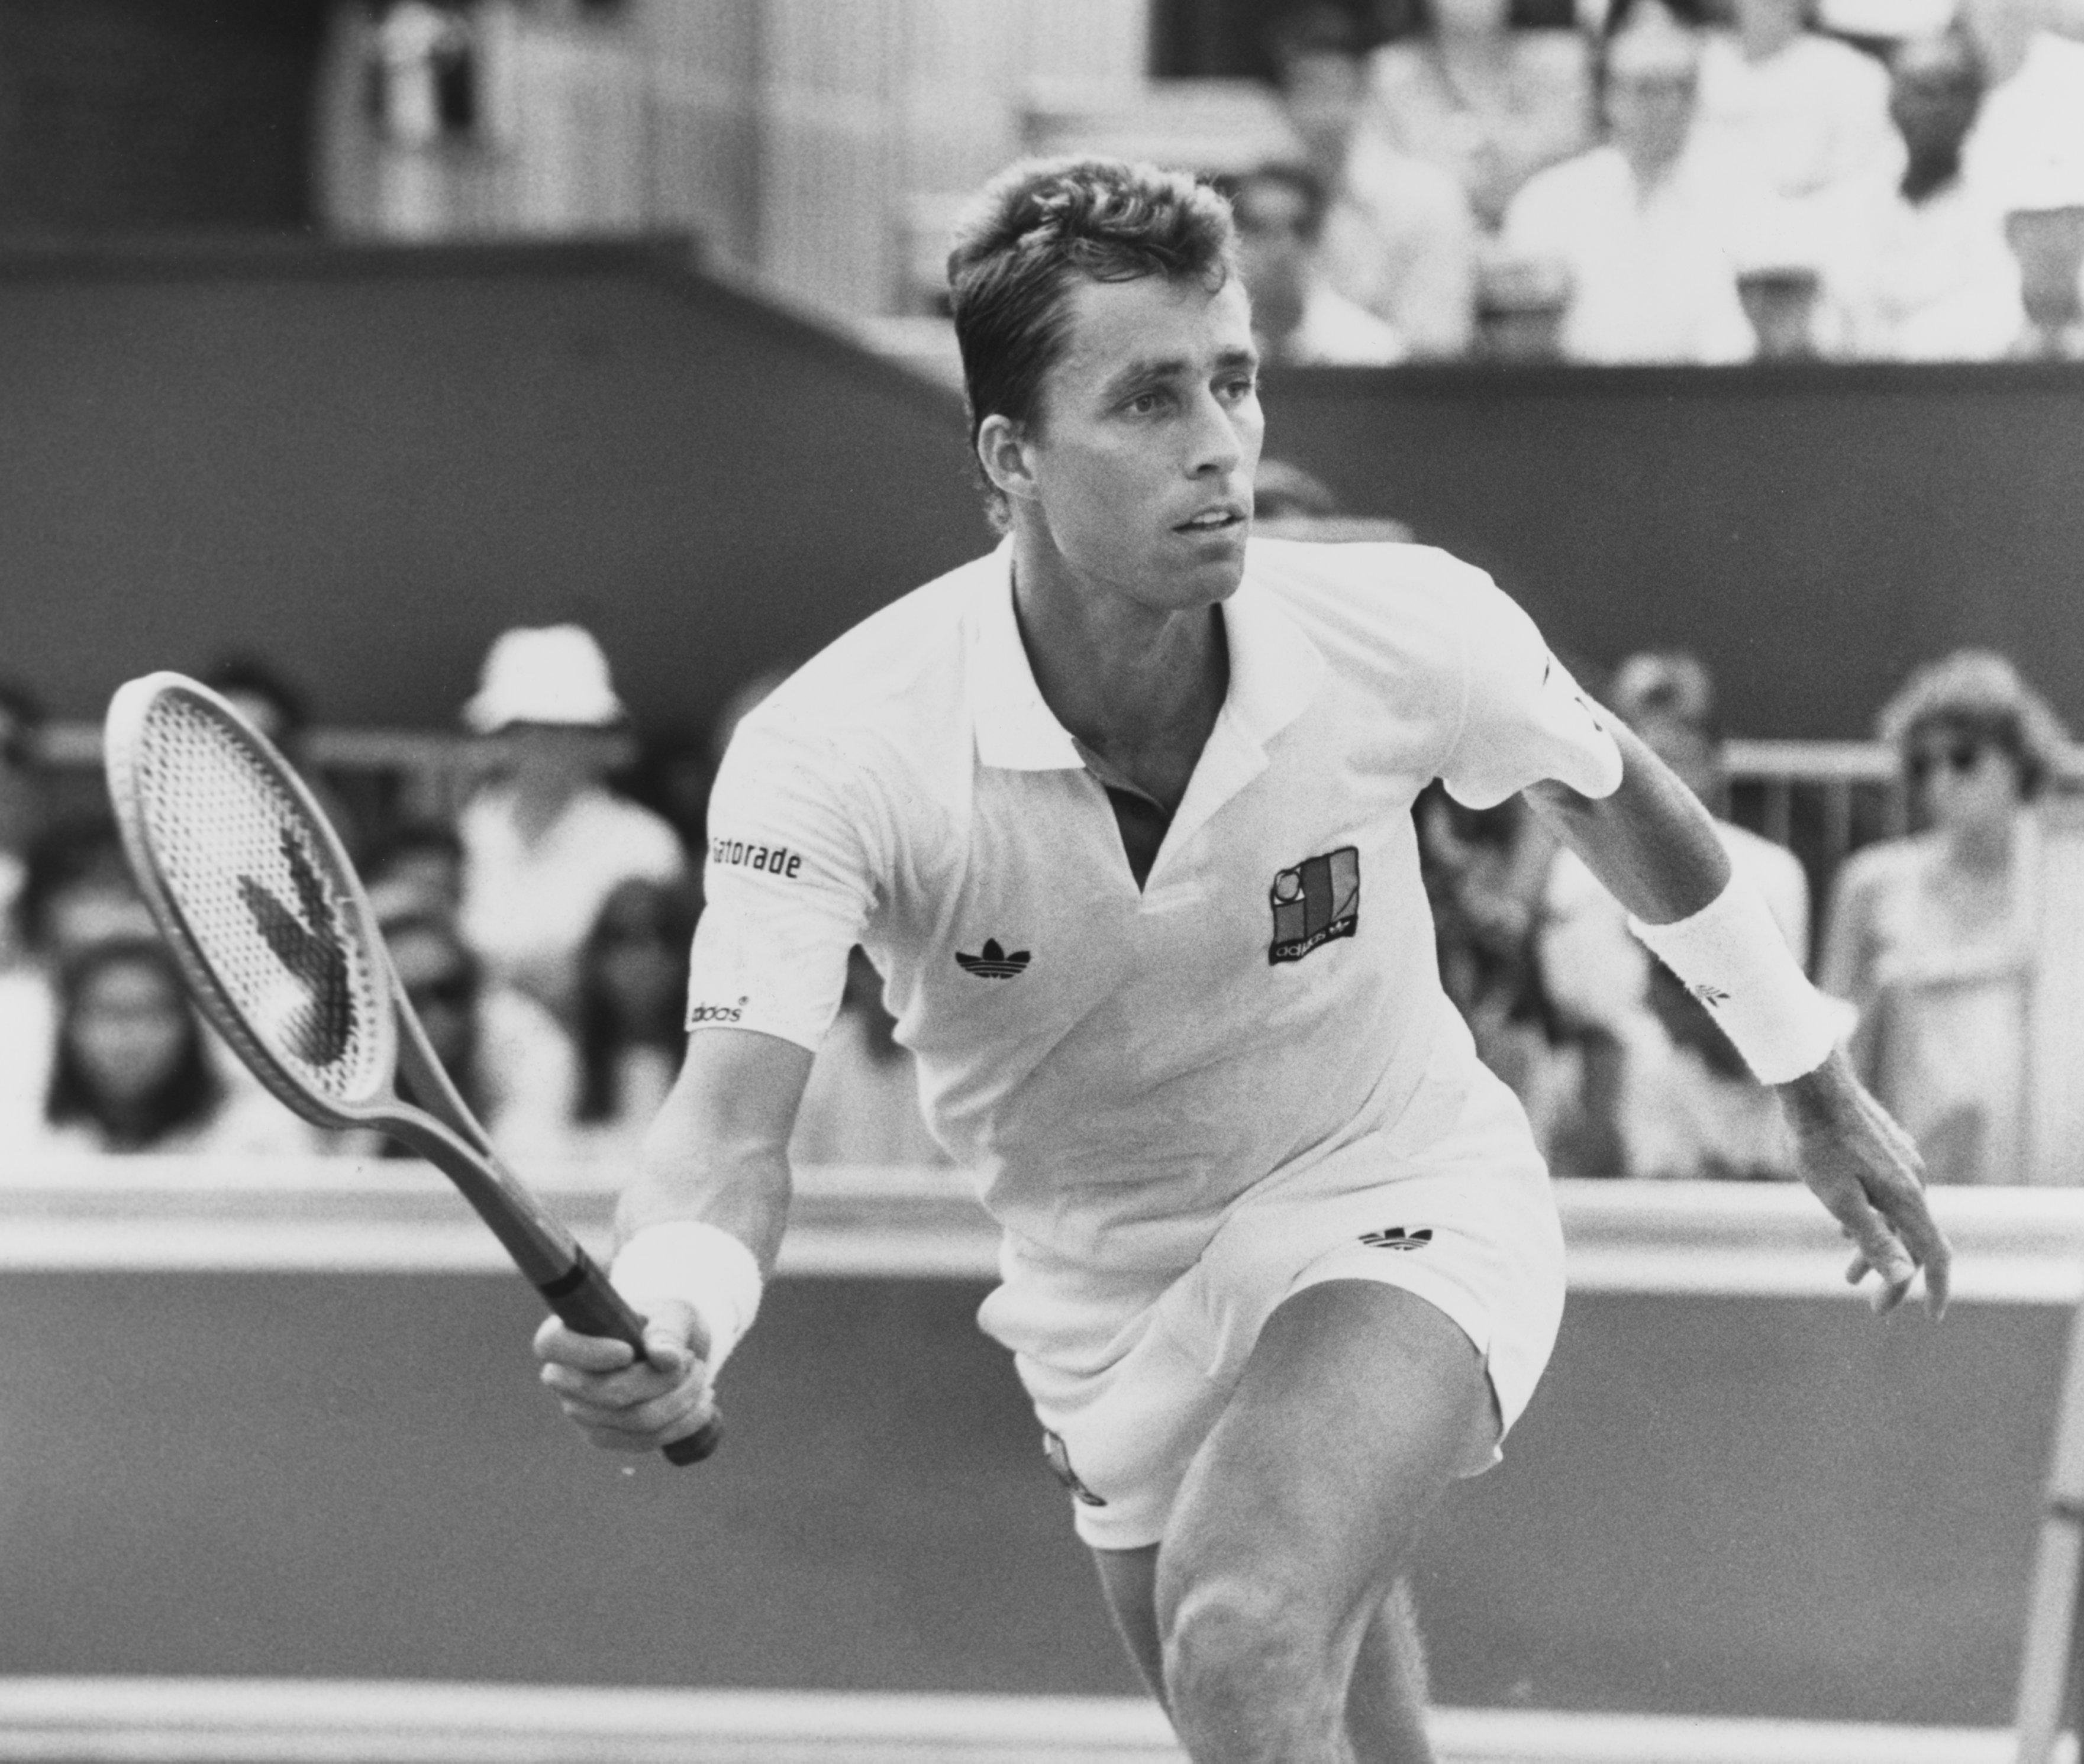 Lendl will be hoping to pass on some of his wisdom from his playing career to Zverev